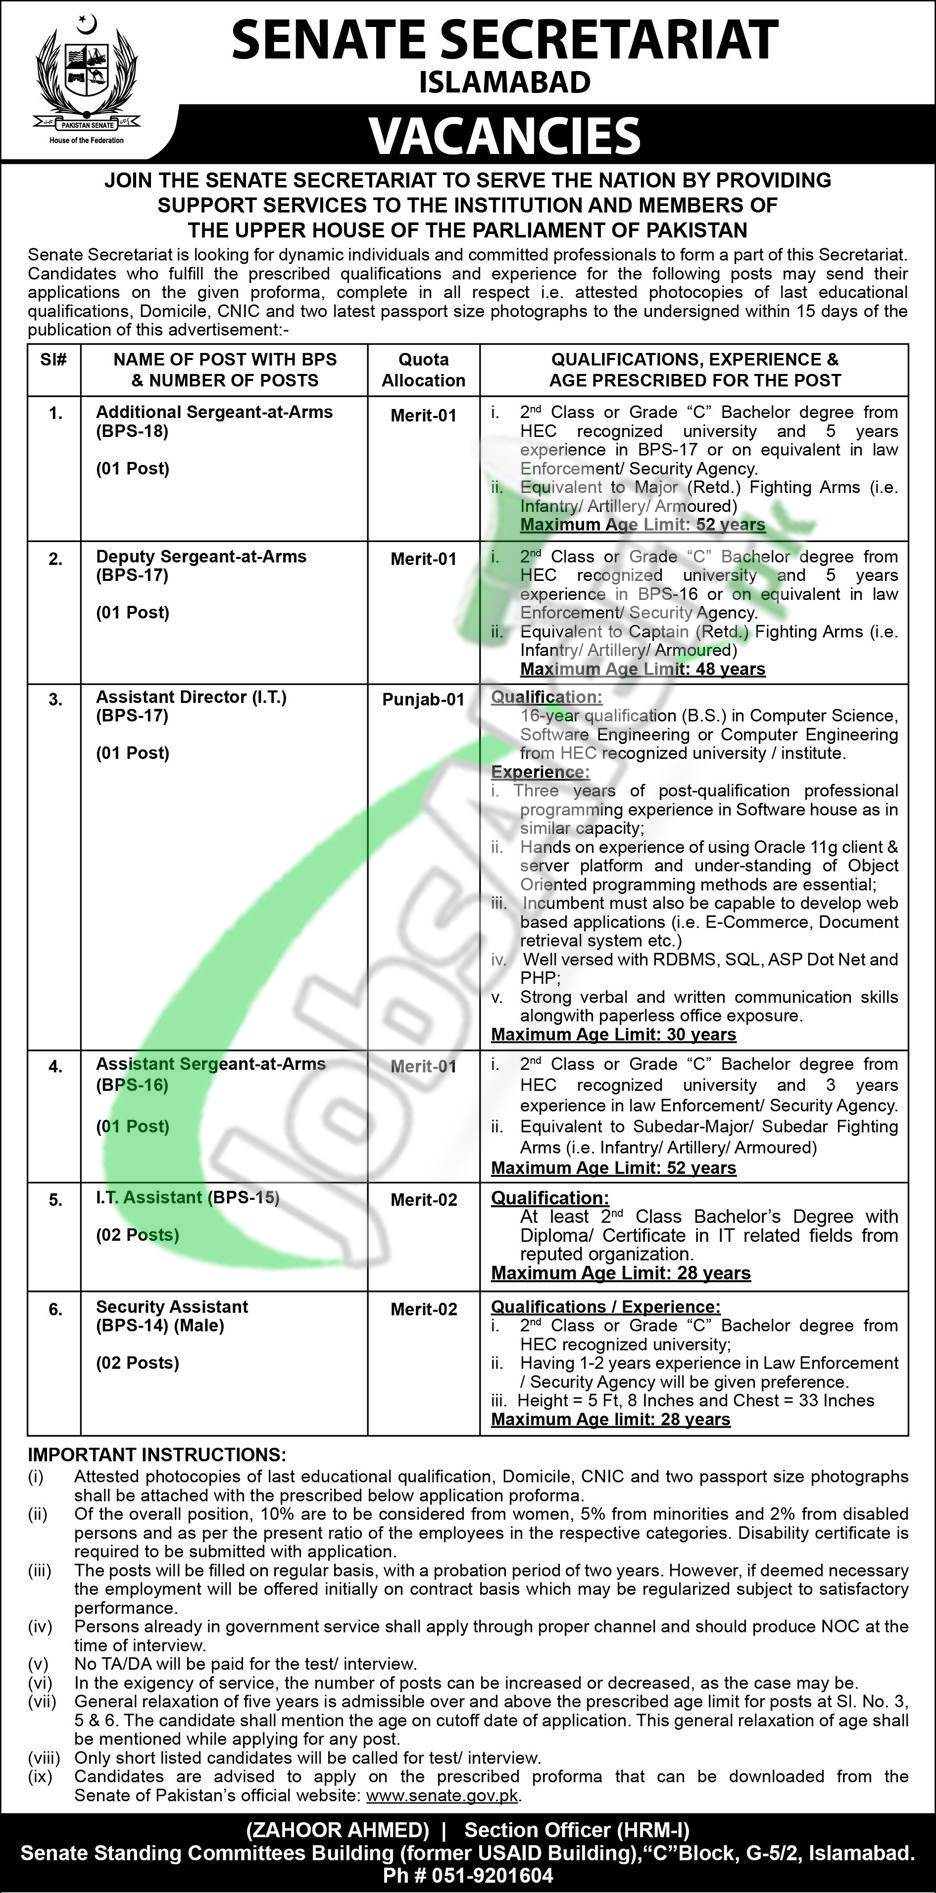 Senate of Pakistan Jobs 2020 Secretariat Islamabad for IT Officer, Assistant Director